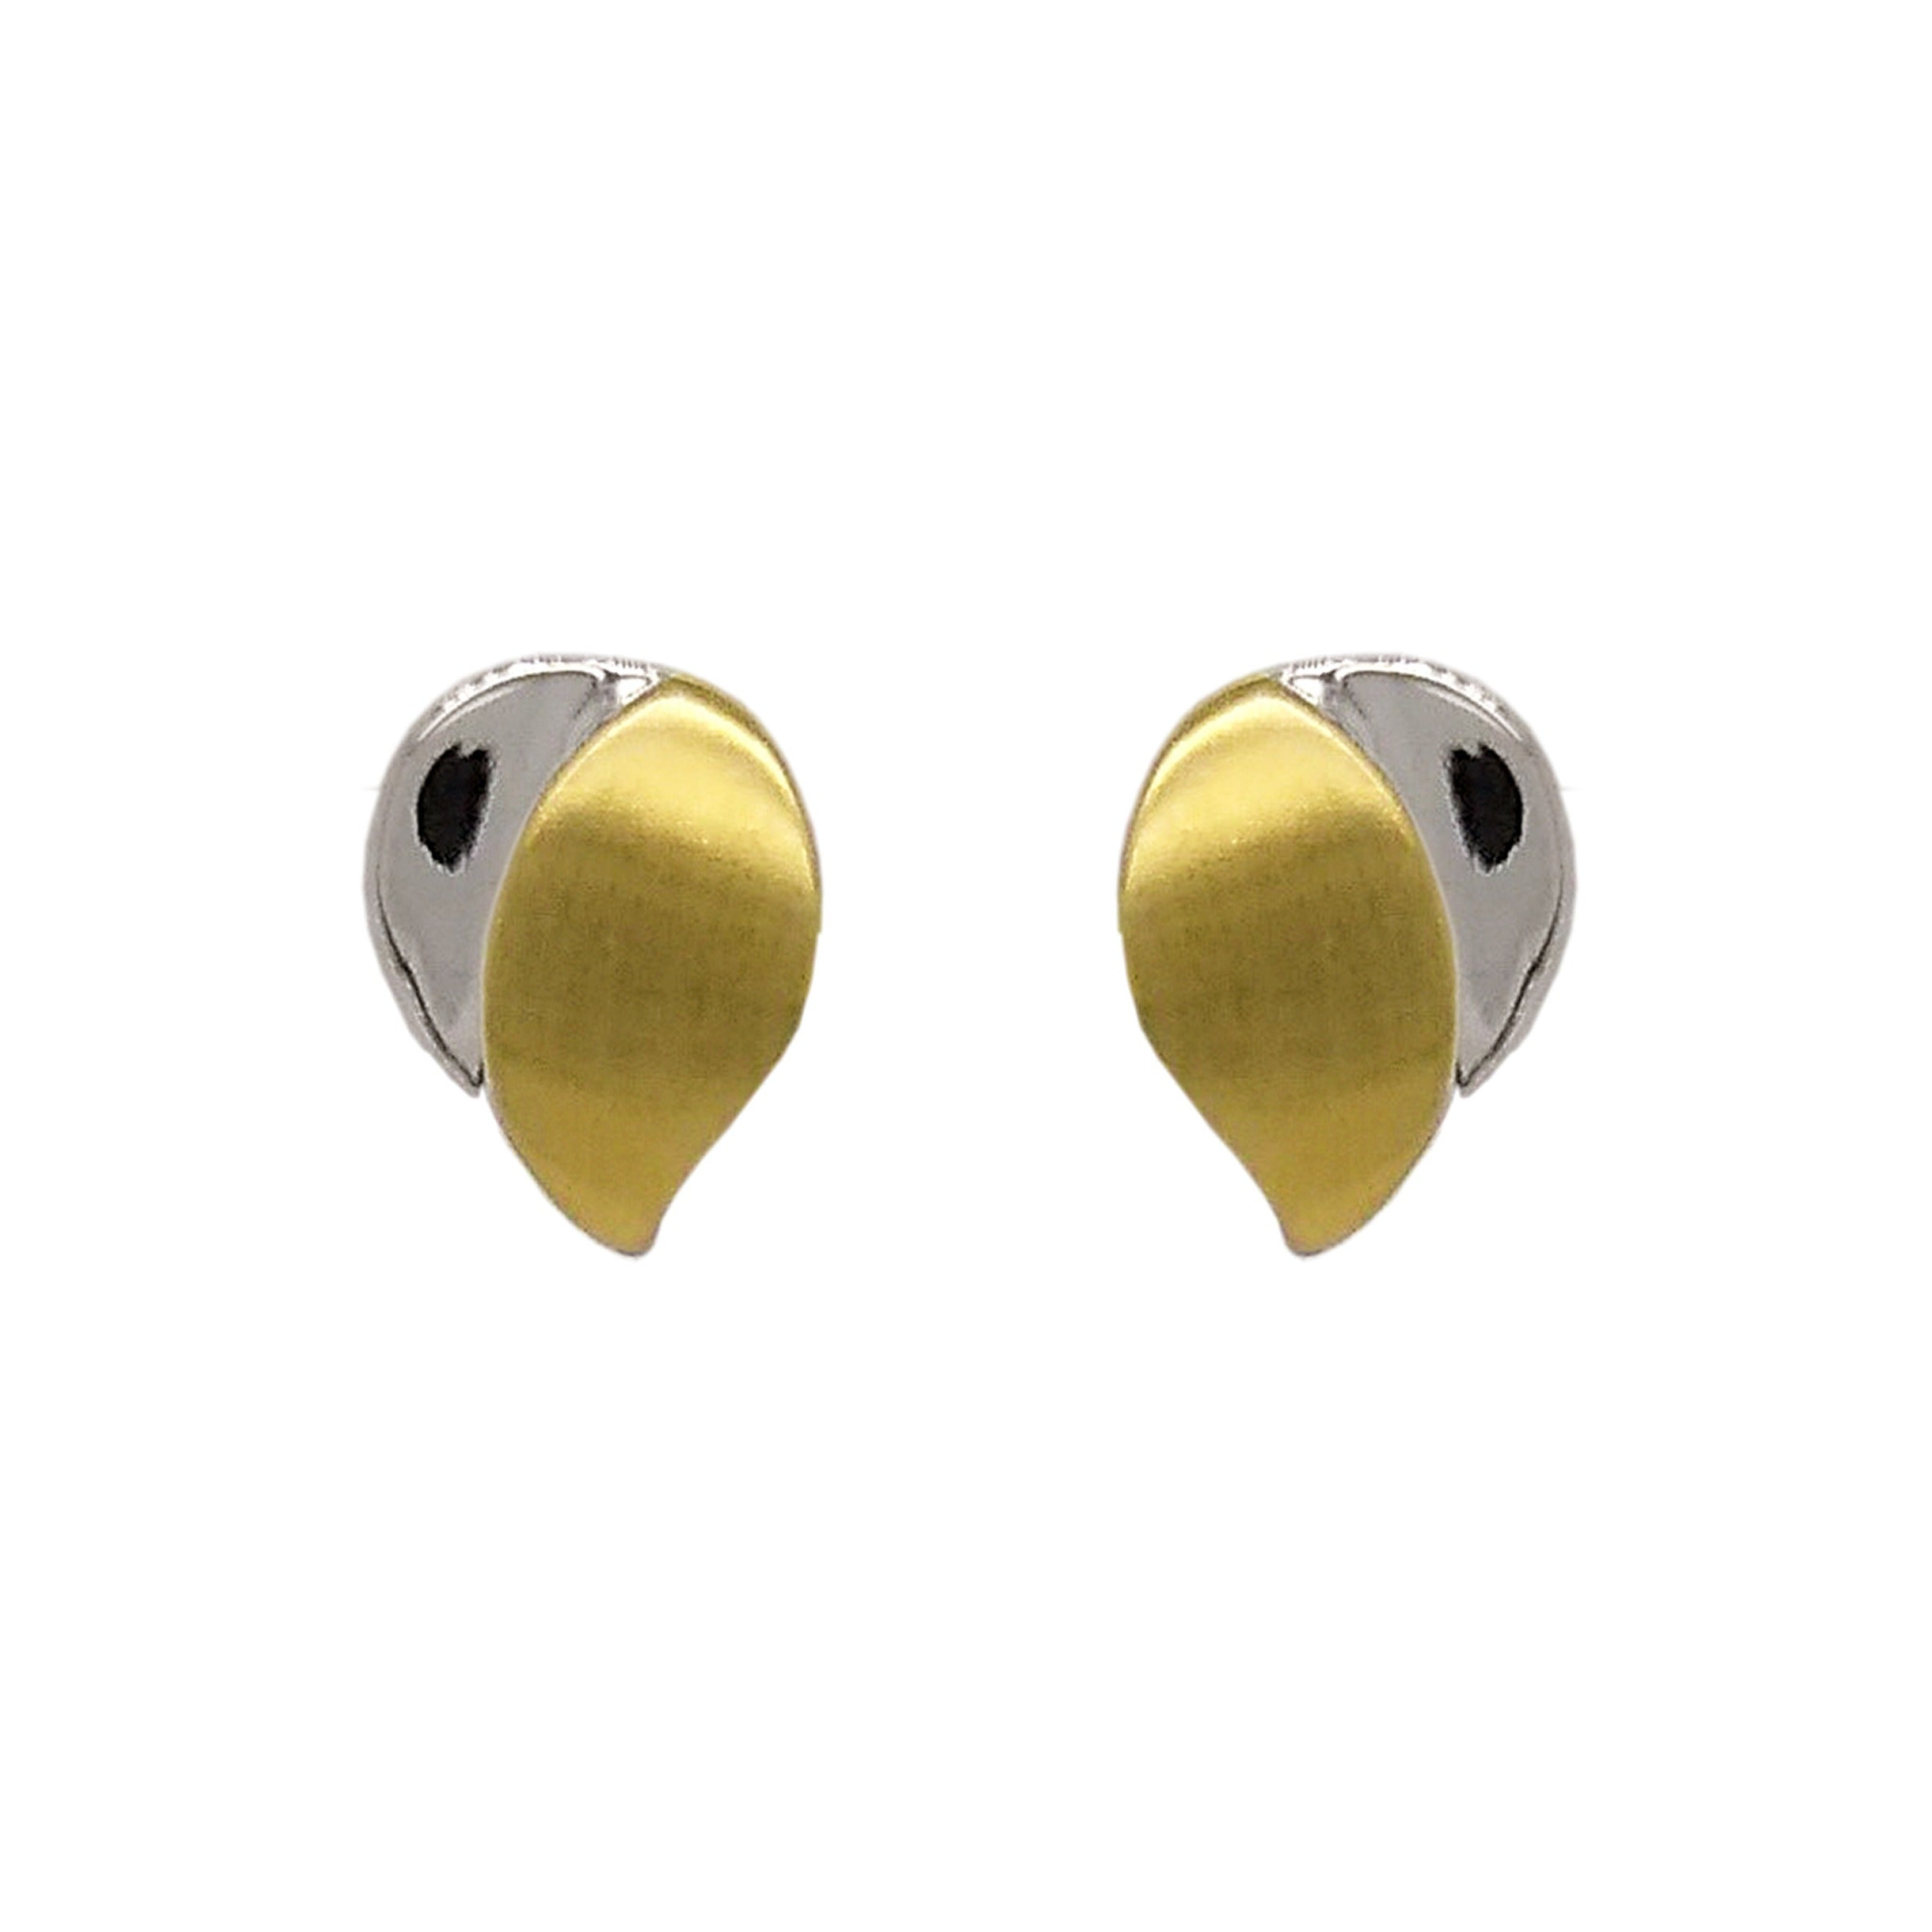 9ct Yellow & White Sail Stud Earrings